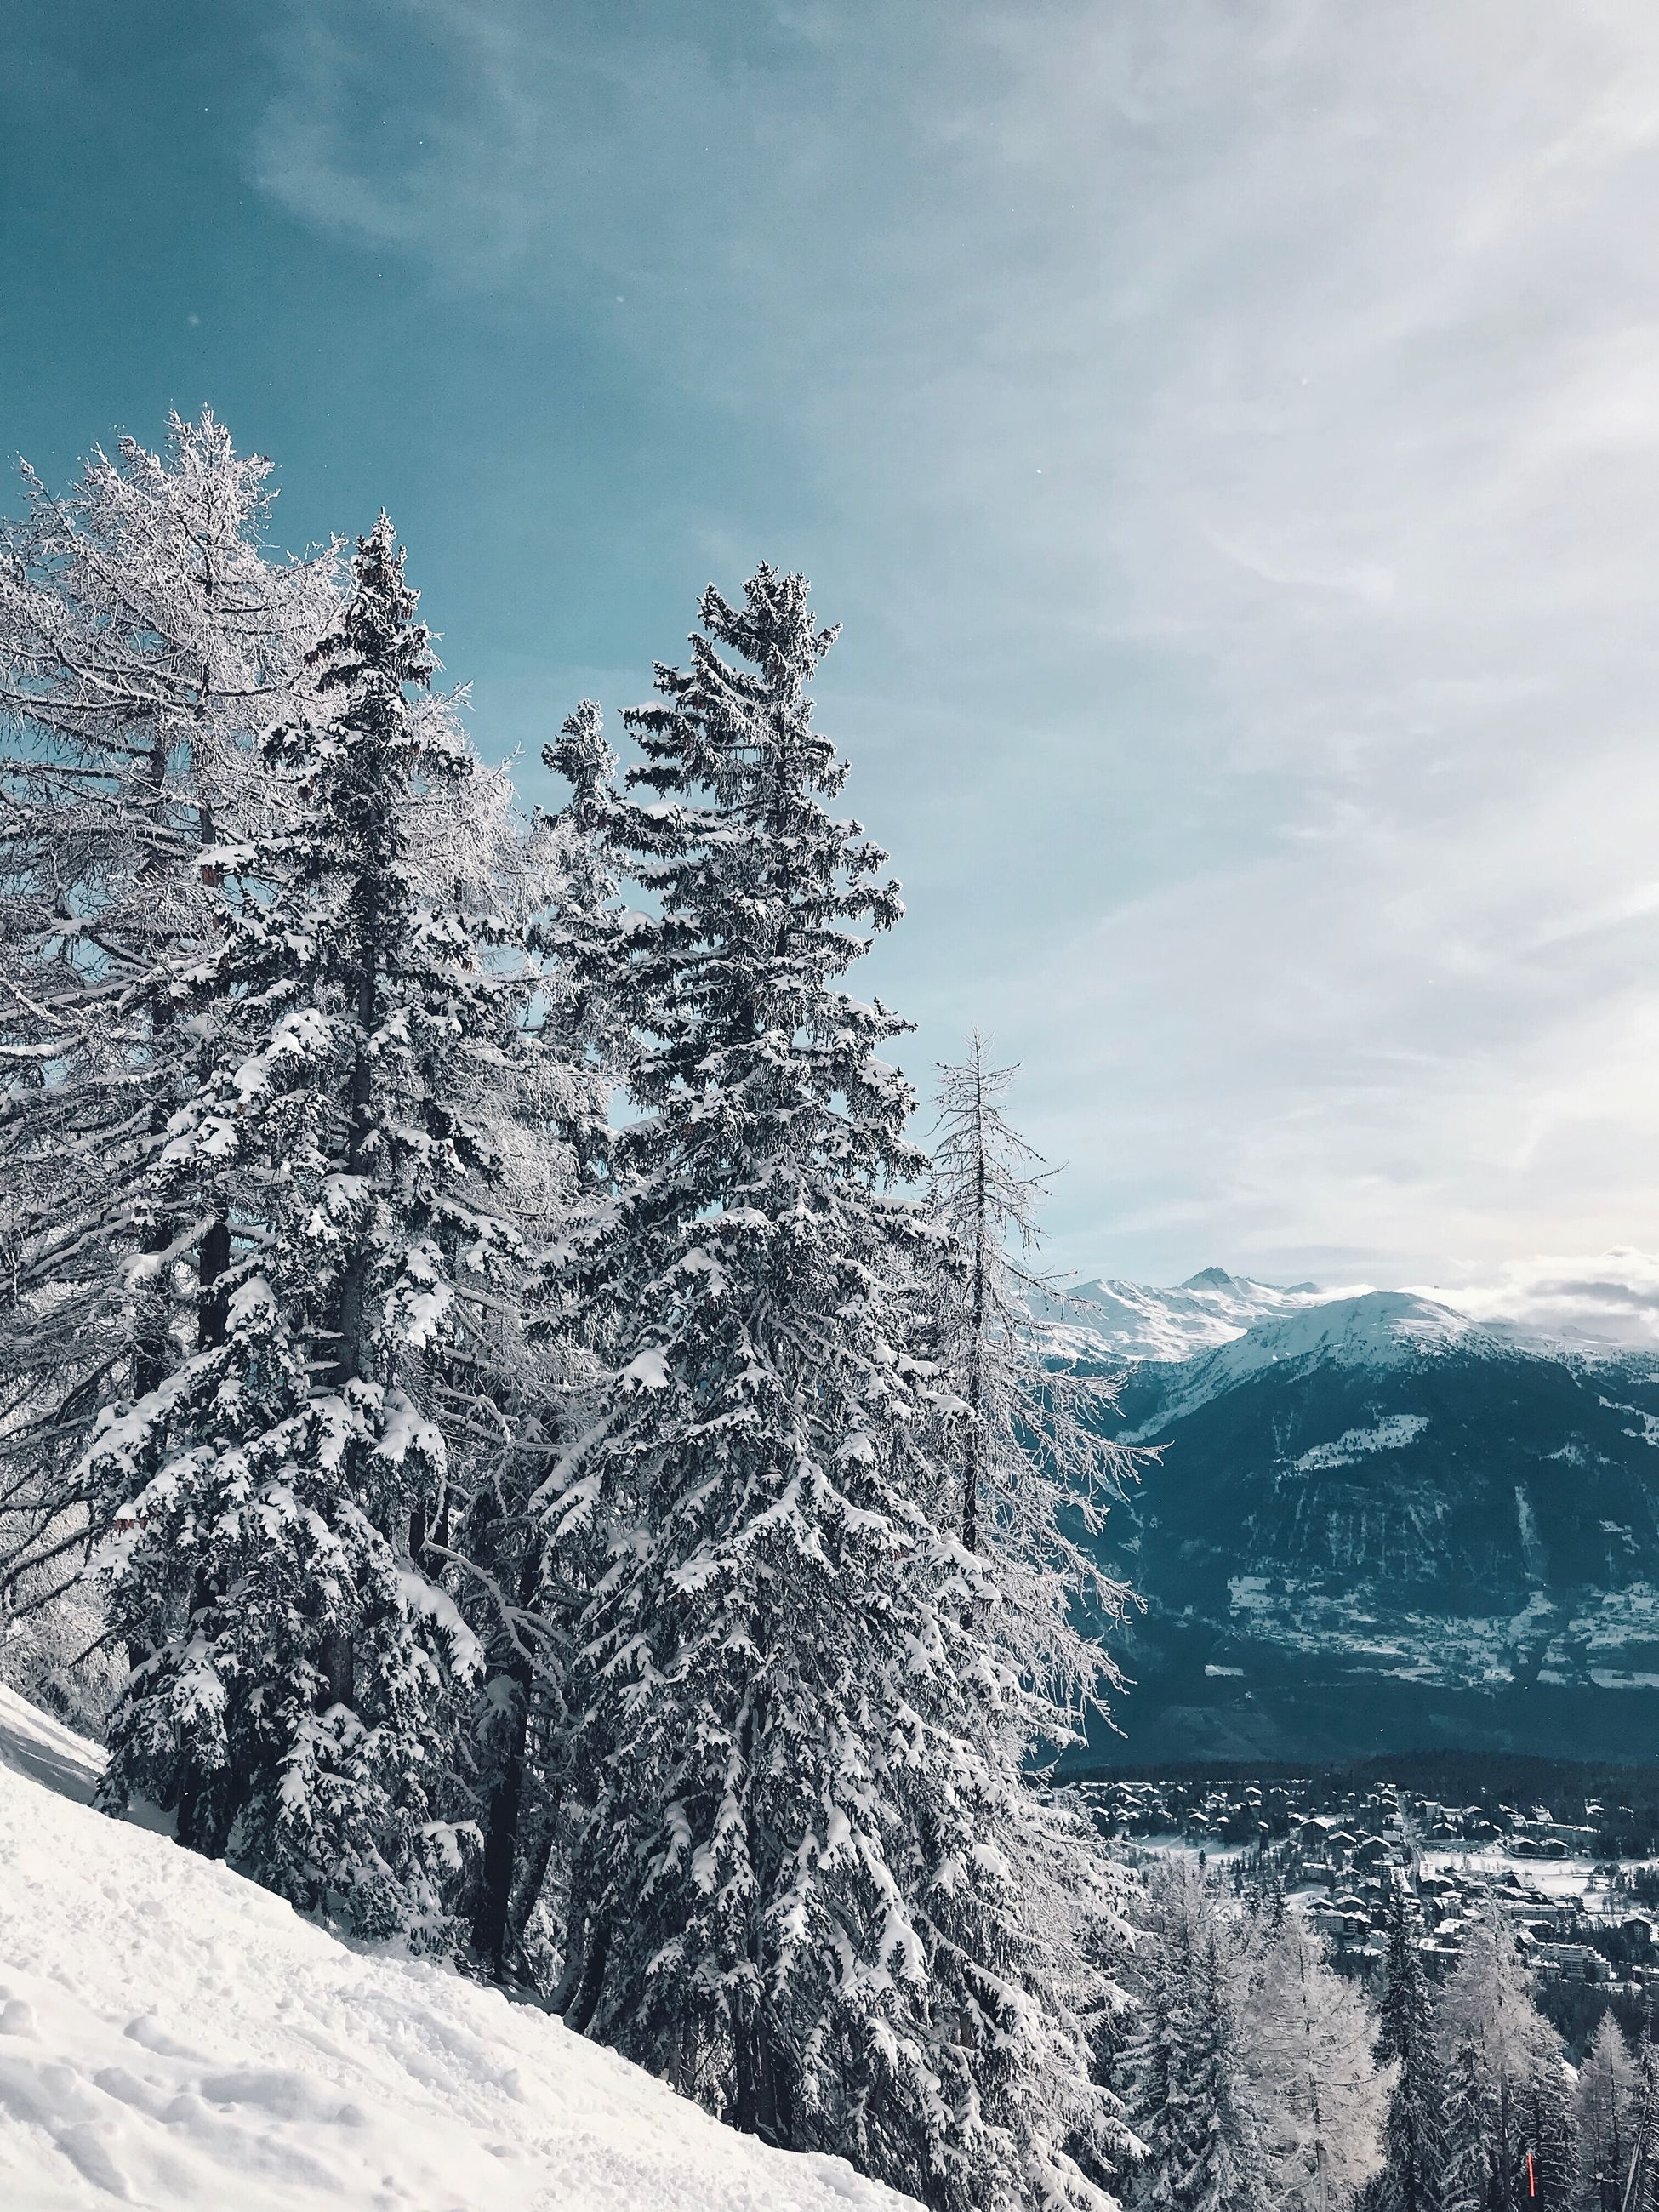 snow, winter, cold temperature, tree, beauty in nature, mountain, scenics - nature, nature, sky, plant, tranquility, tranquil scene, cloud - sky, no people, day, covering, environment, frozen, landscape, outdoors, snowcapped mountain, pine tree, coniferous tree, range